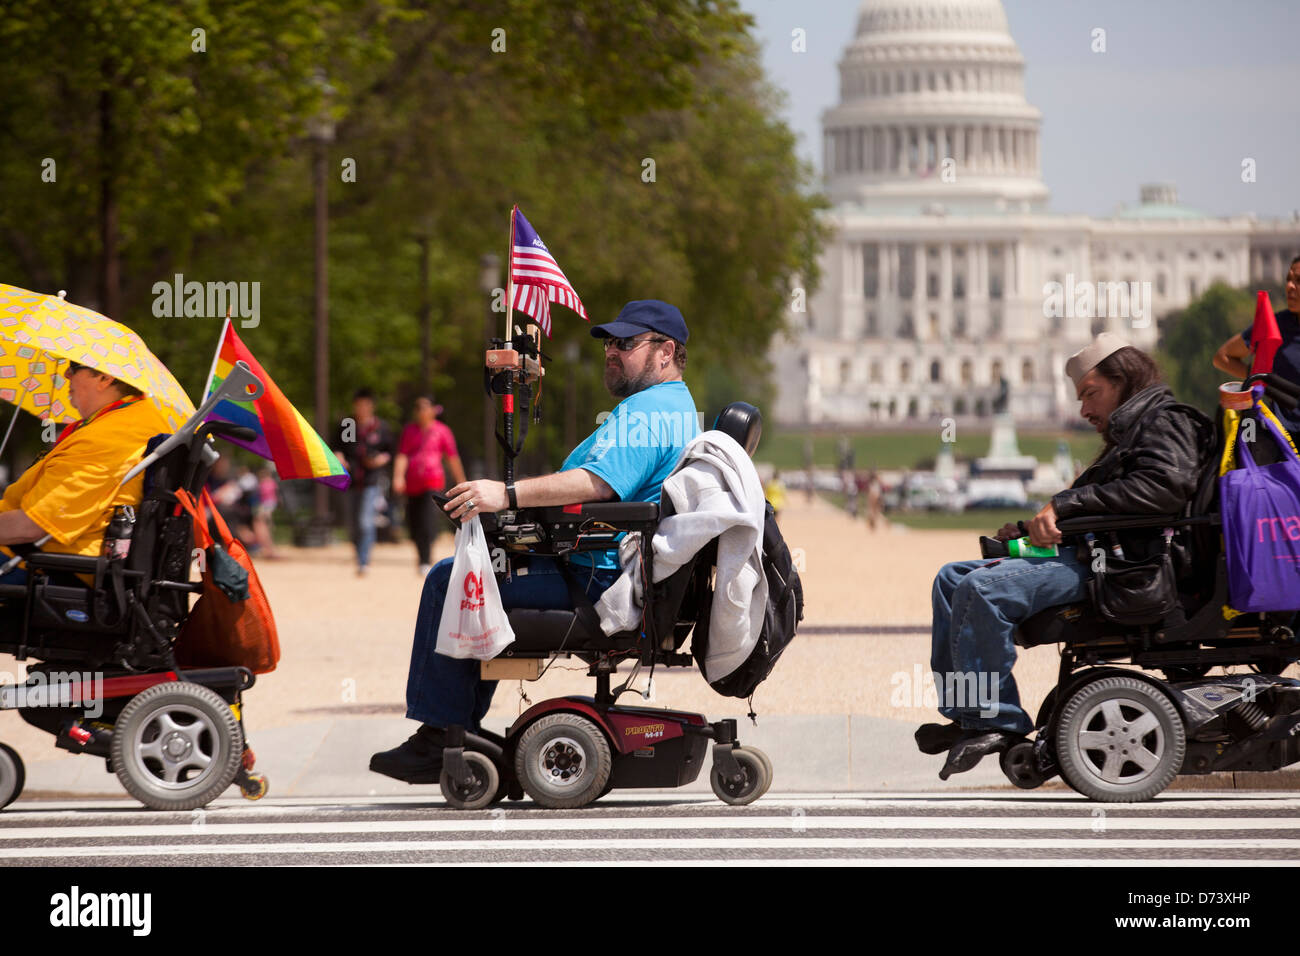 Disabled people in wheelchairs crossing the street - Washington, DC USA - Stock Image